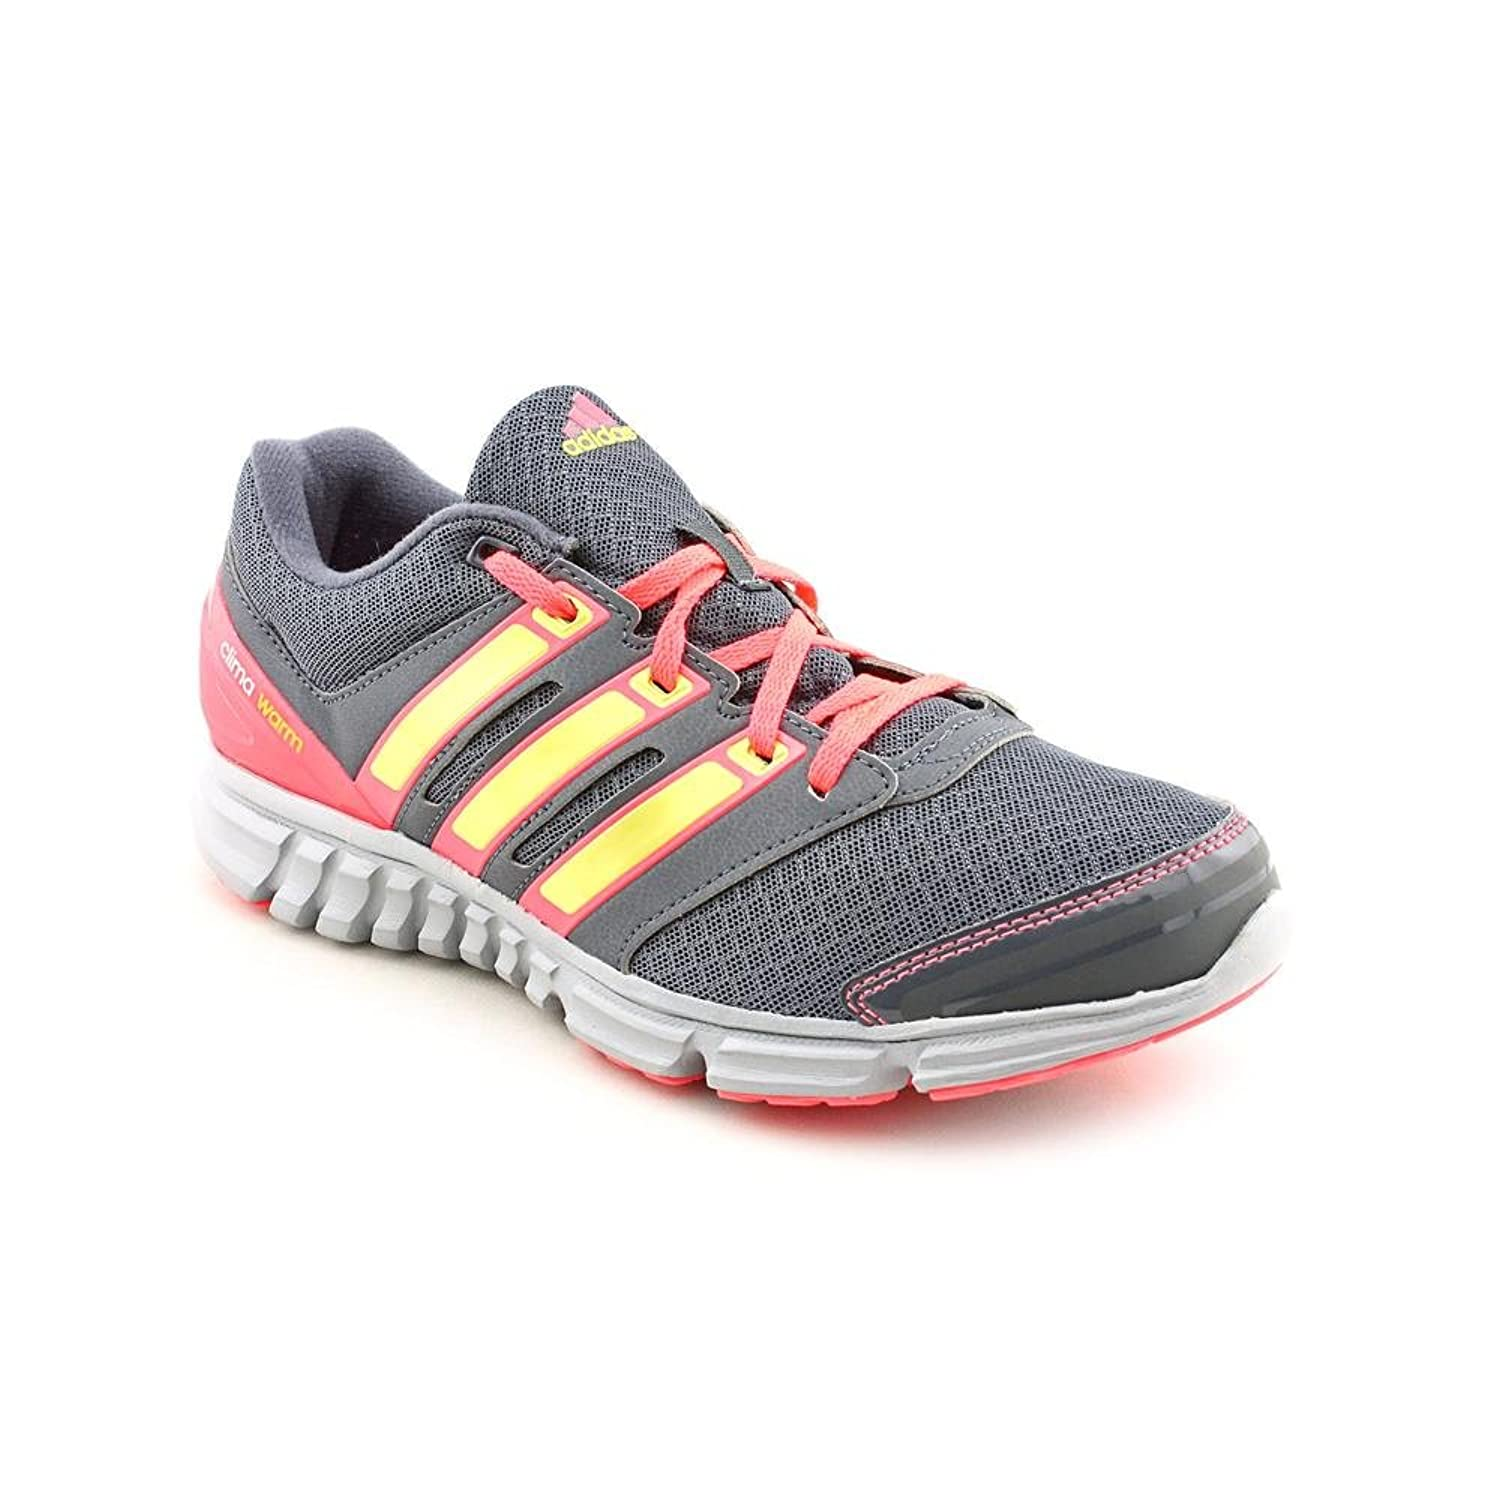 hot sale Adidas Climawarm Falcon Pdx Women's Running Shoes